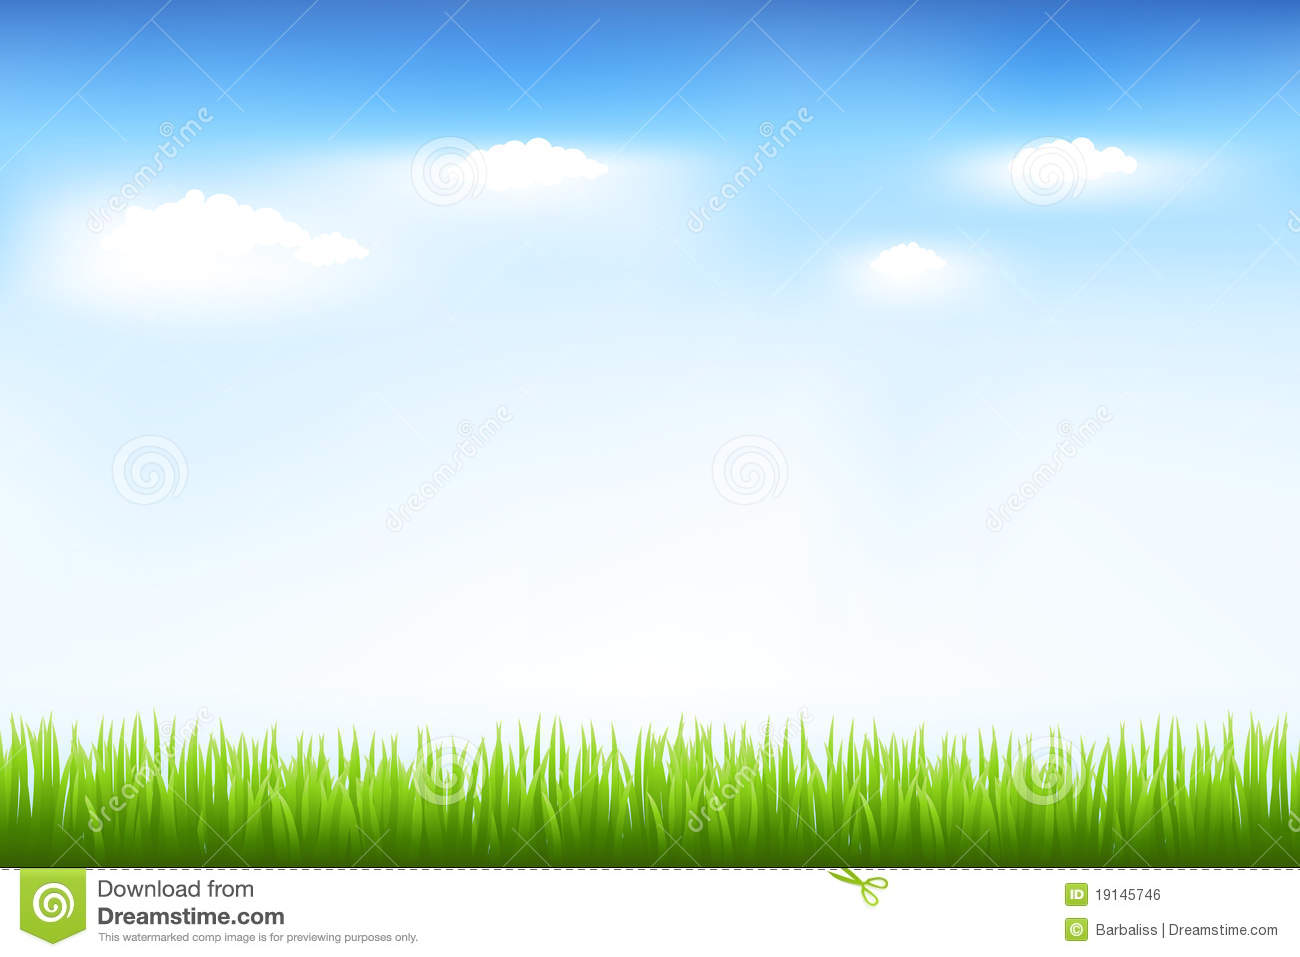 green grass and blue sky | clipart panda - free clipart images